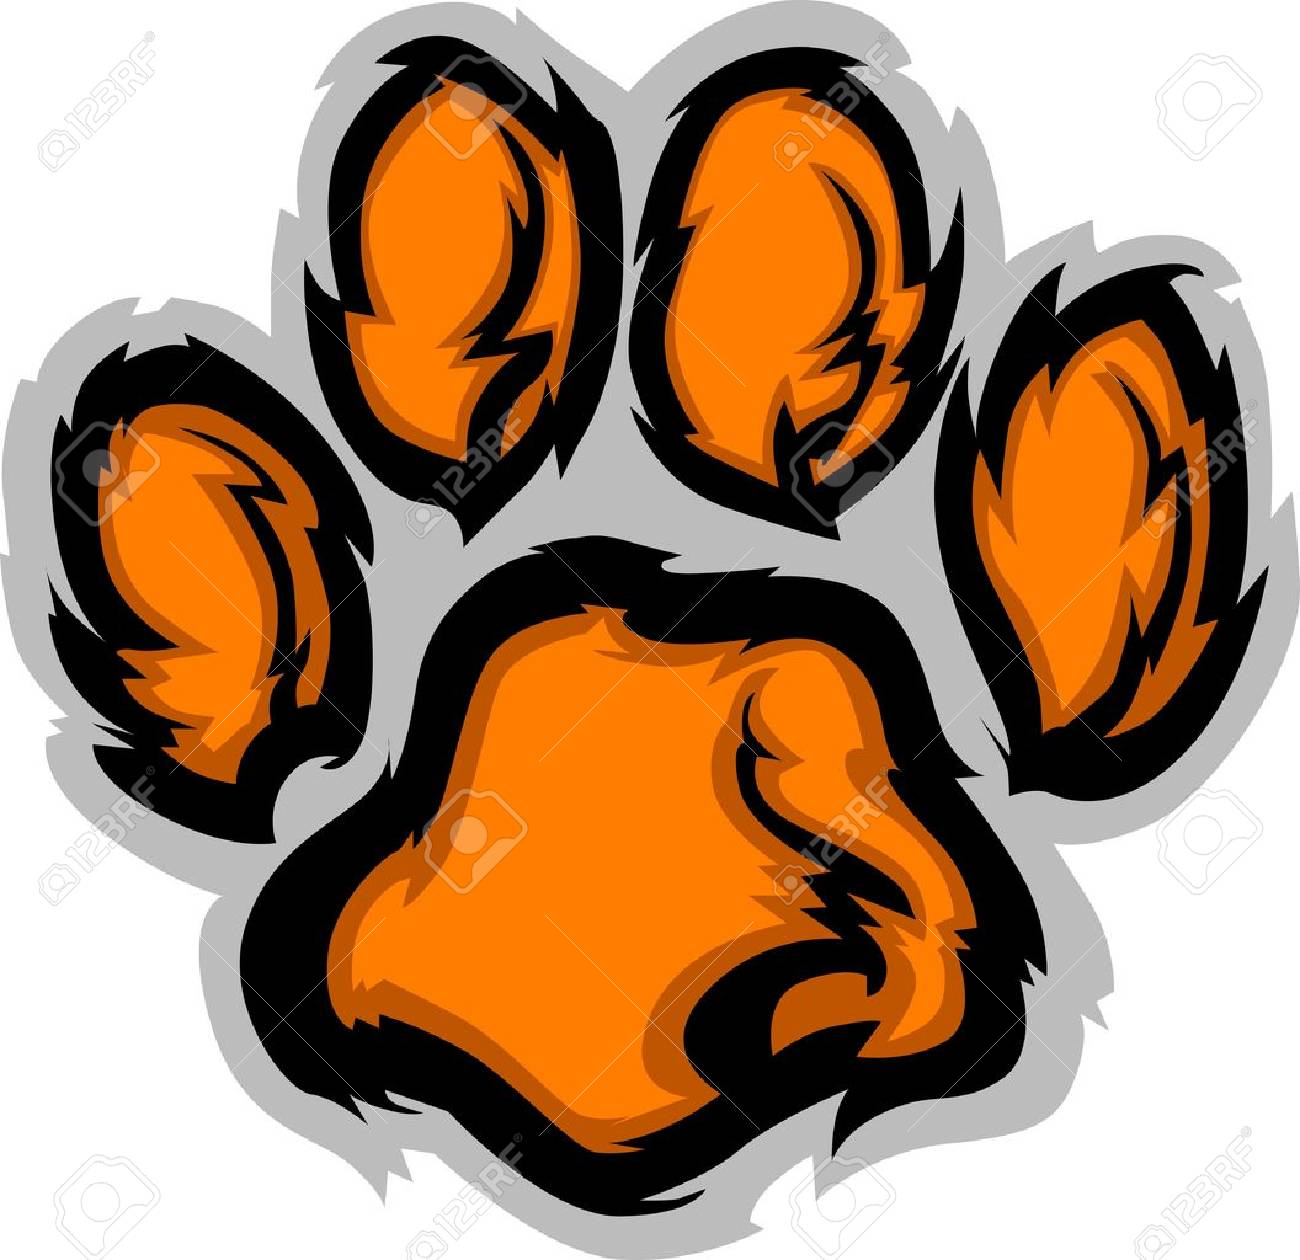 Tiger Paw Graphic Mascot Vector Image Stock Vector - 10902000